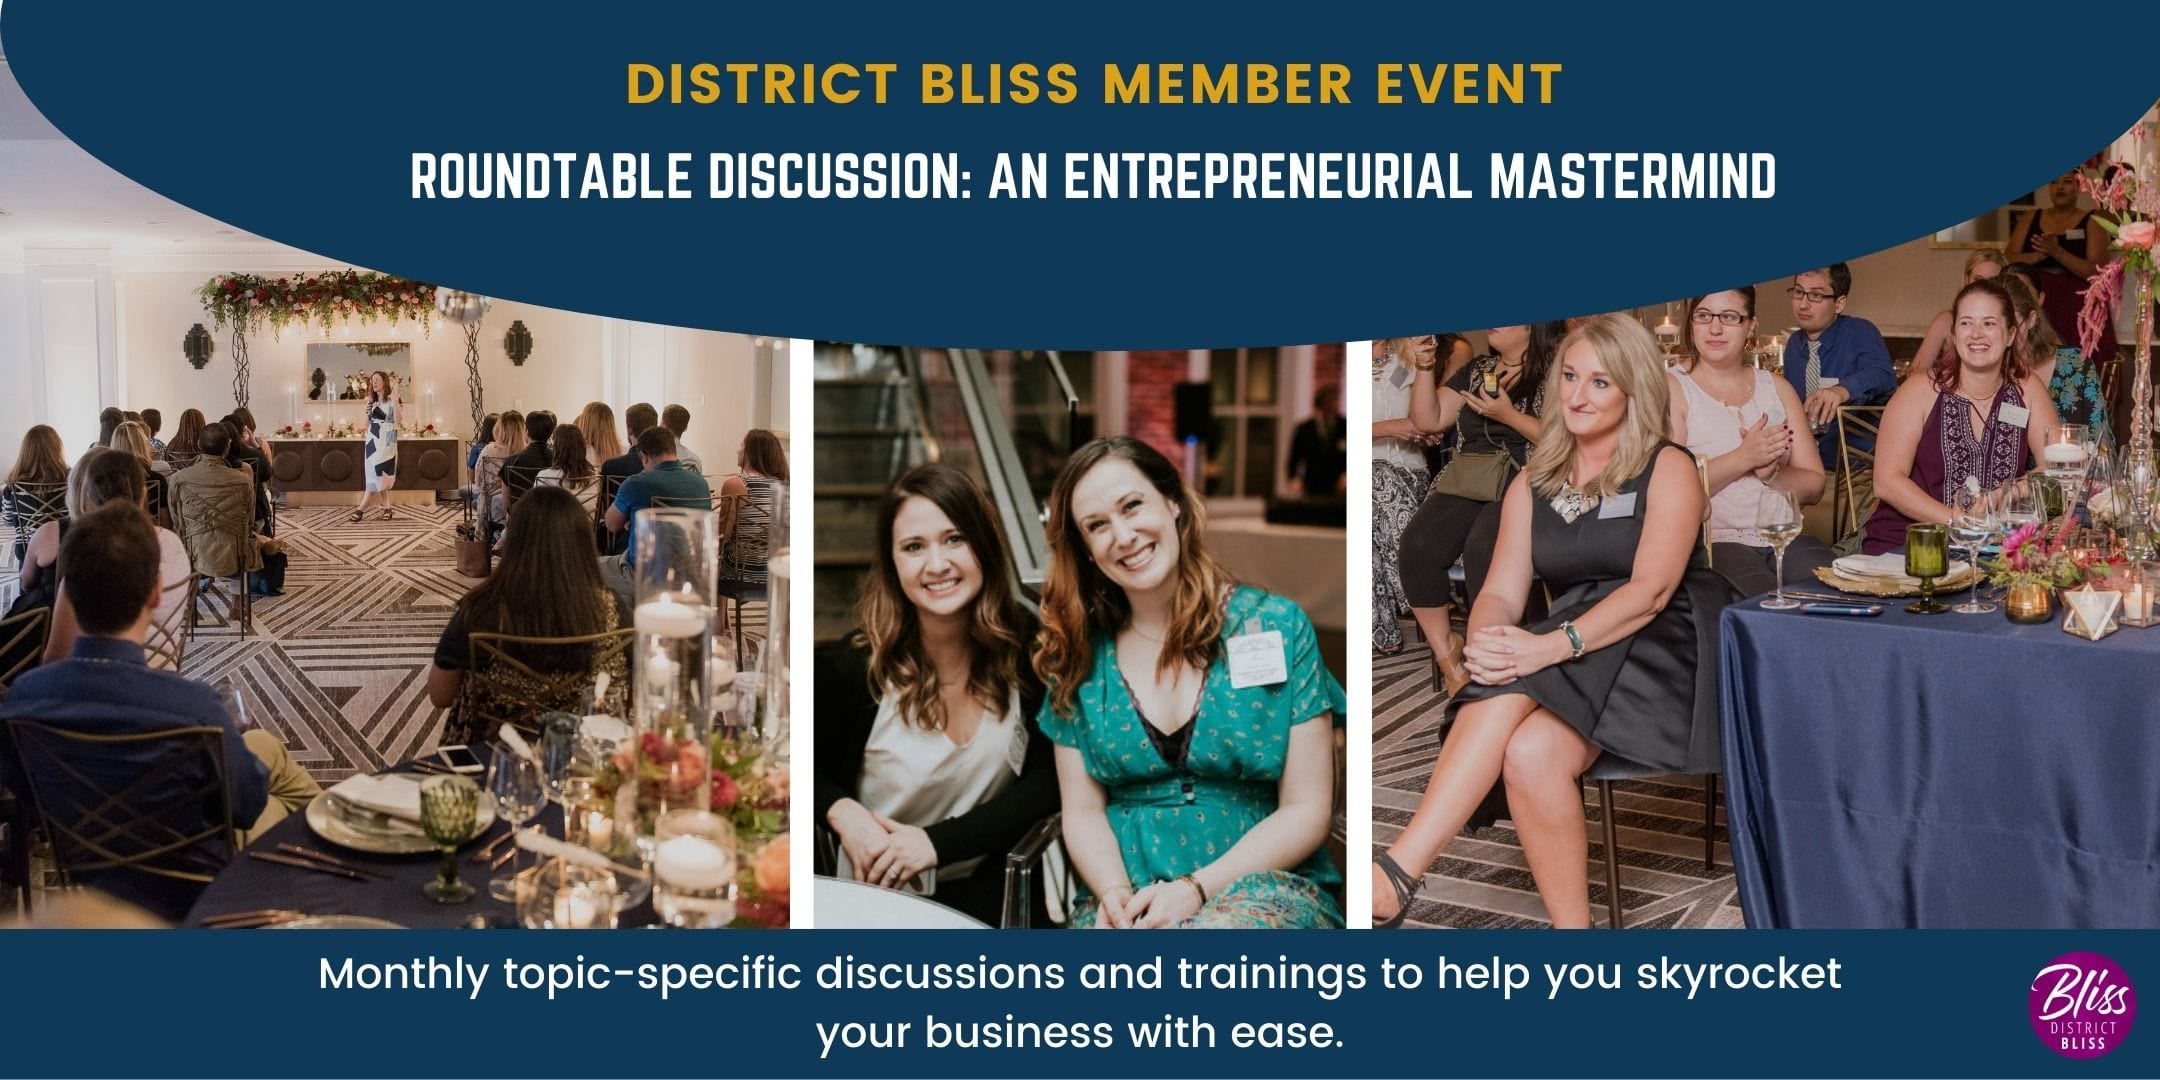 Entrepreneurial Mastermind with District Bliss